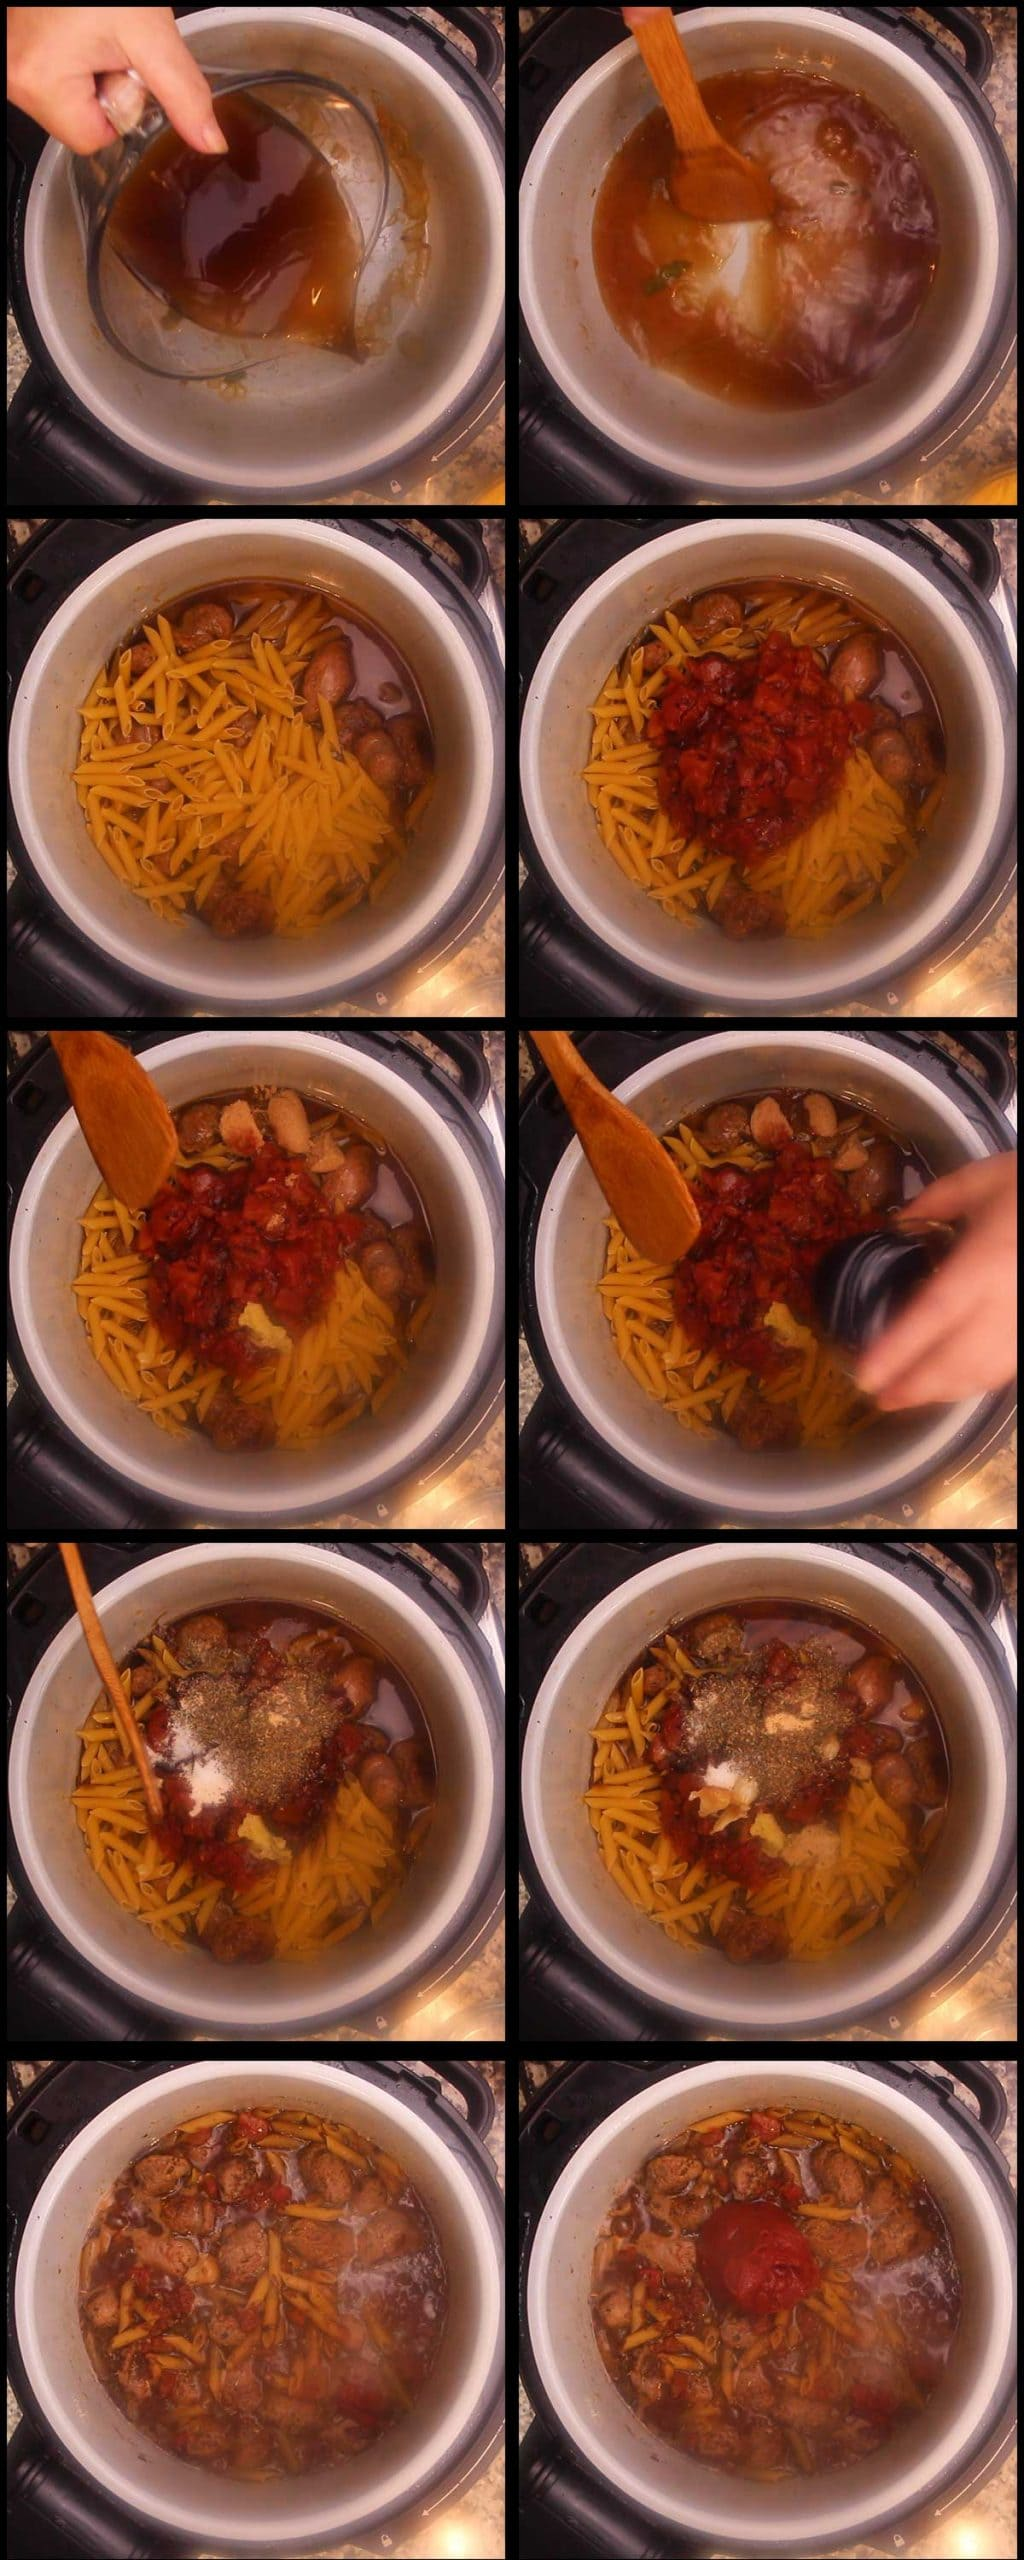 adding the remaining ingredients to the pot before pressure cooking